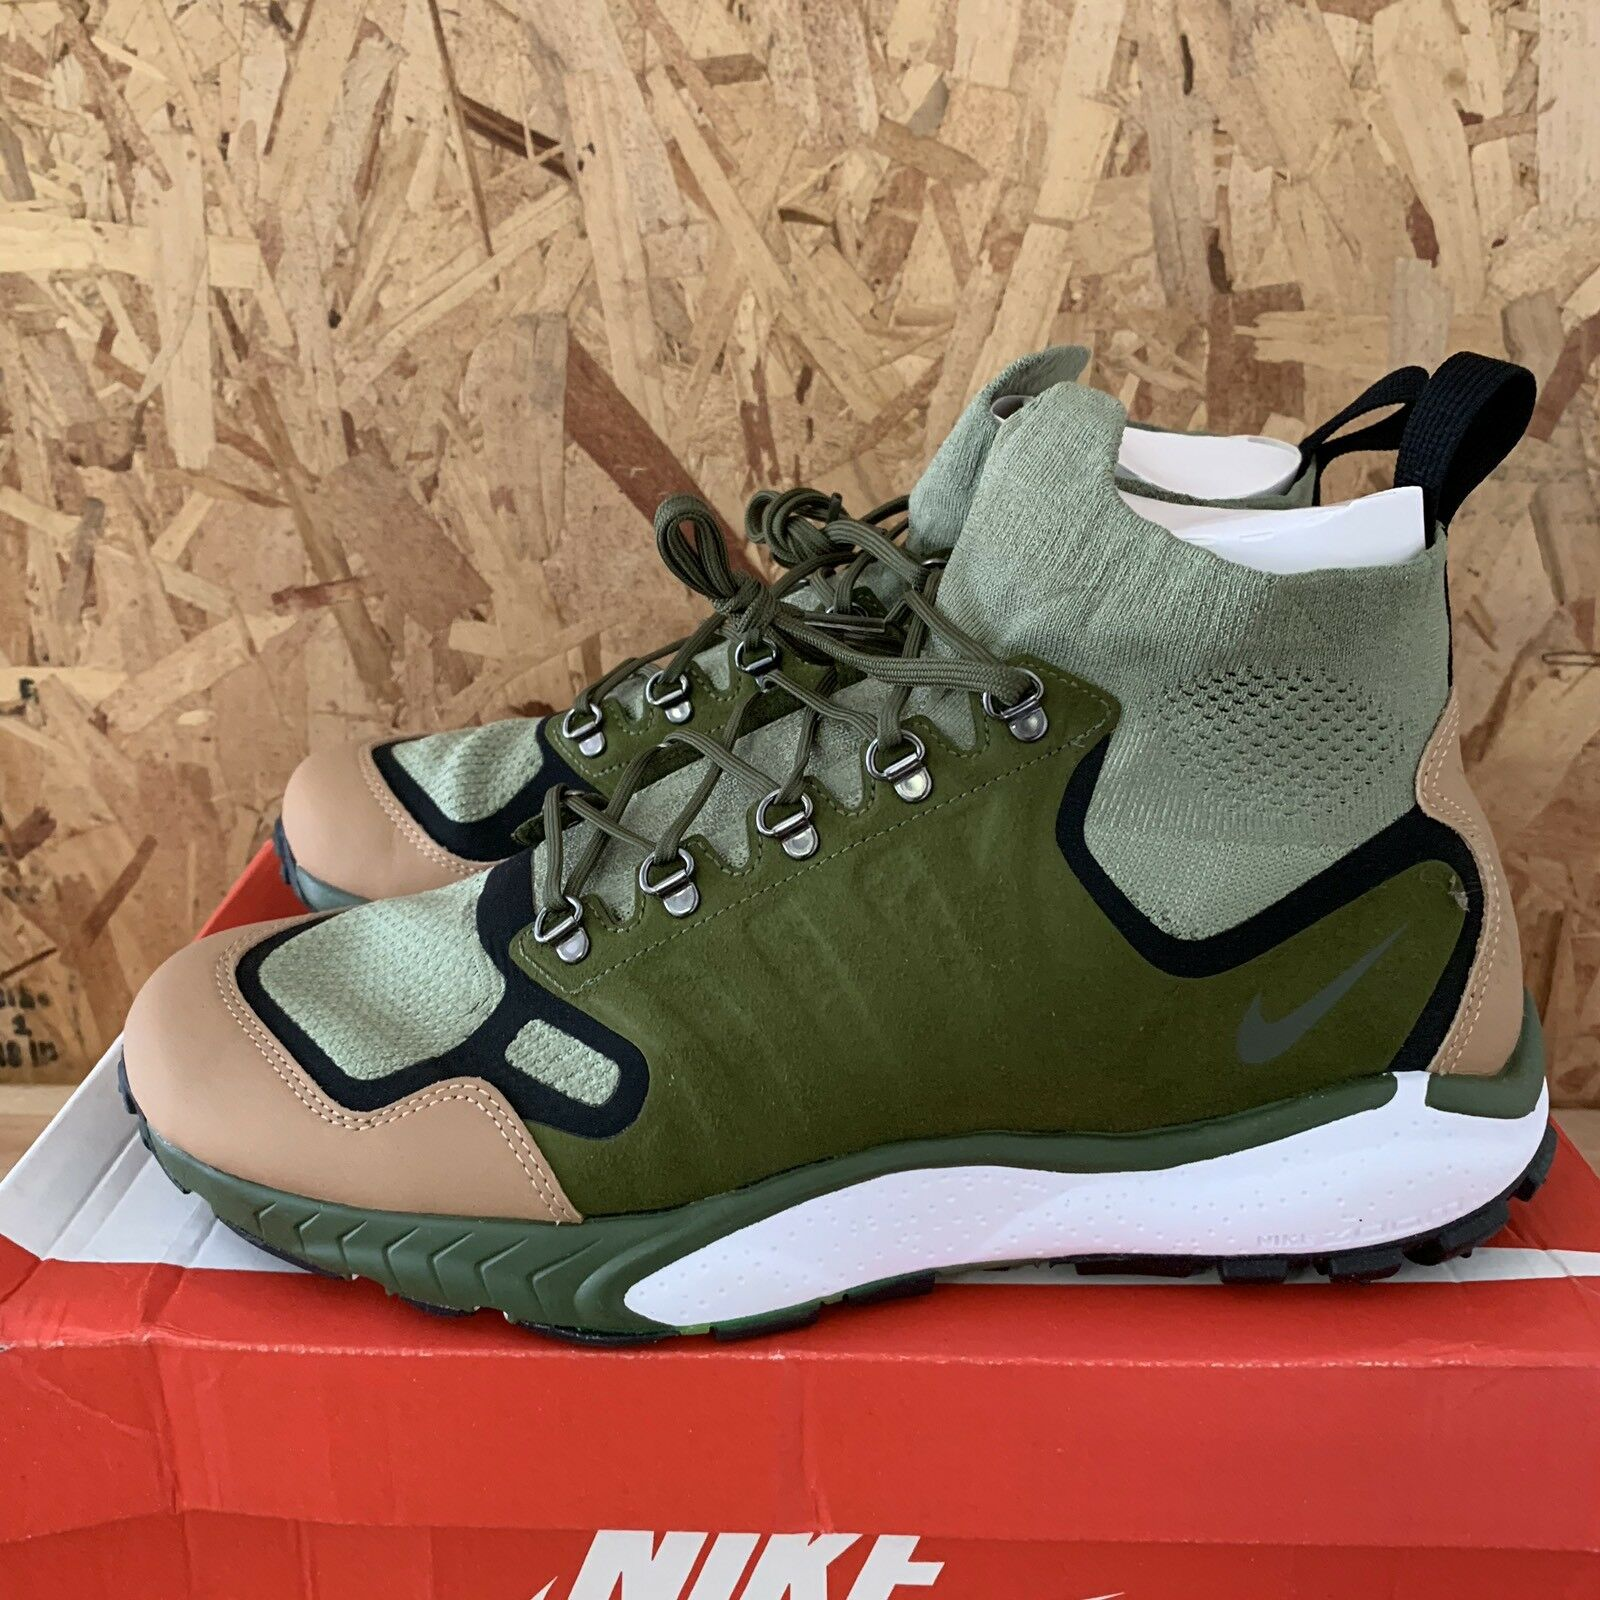 Nike Zoom Talaria Mid FK PRM - Palm Green   Legion Green Size 10.5 New